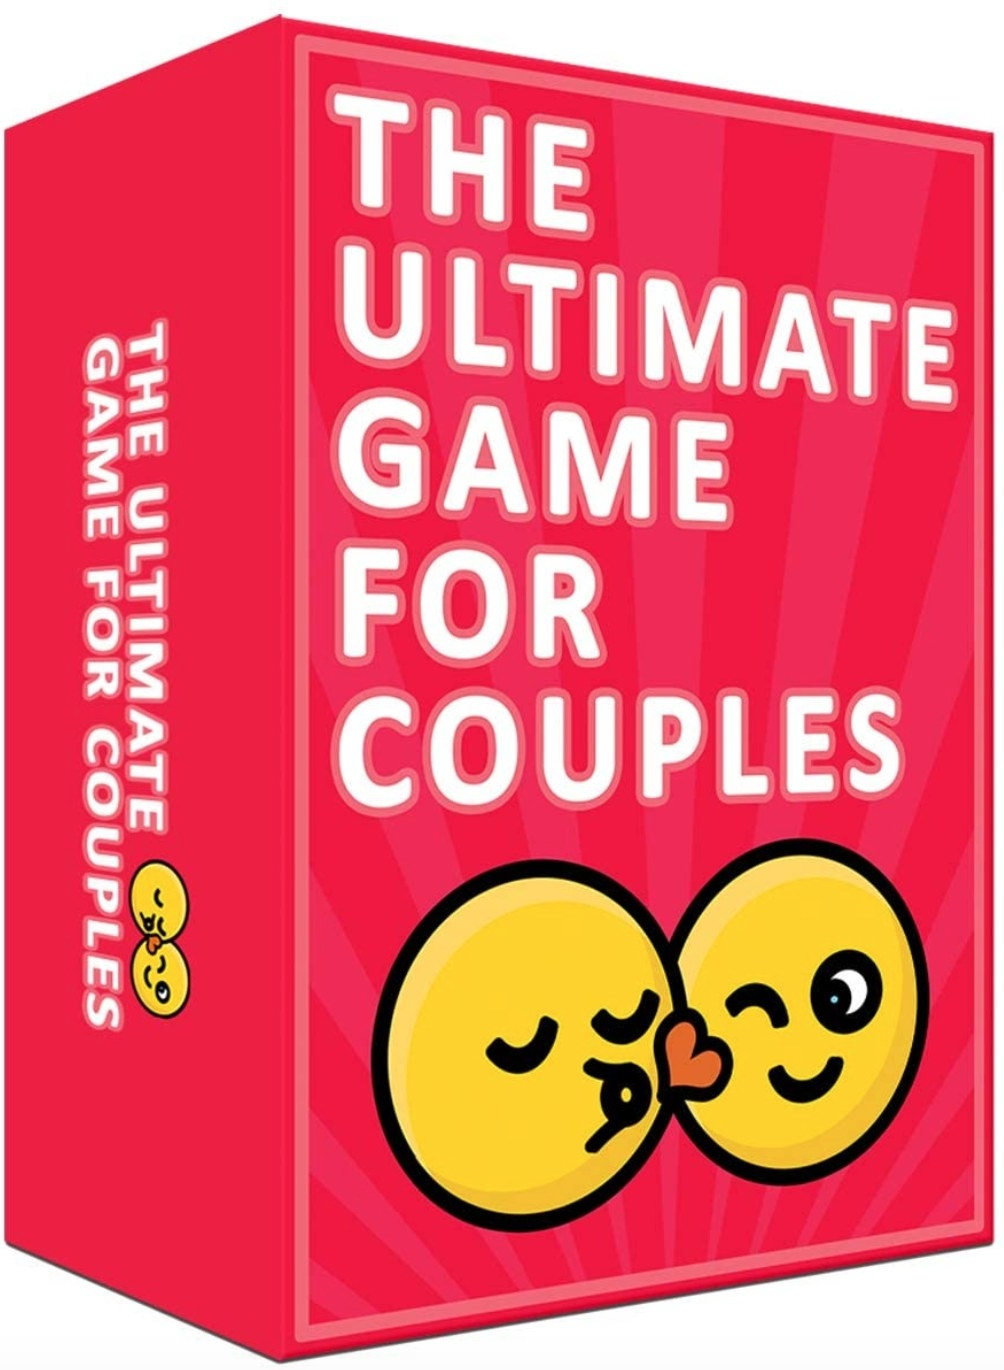 The ultimate game for couples box